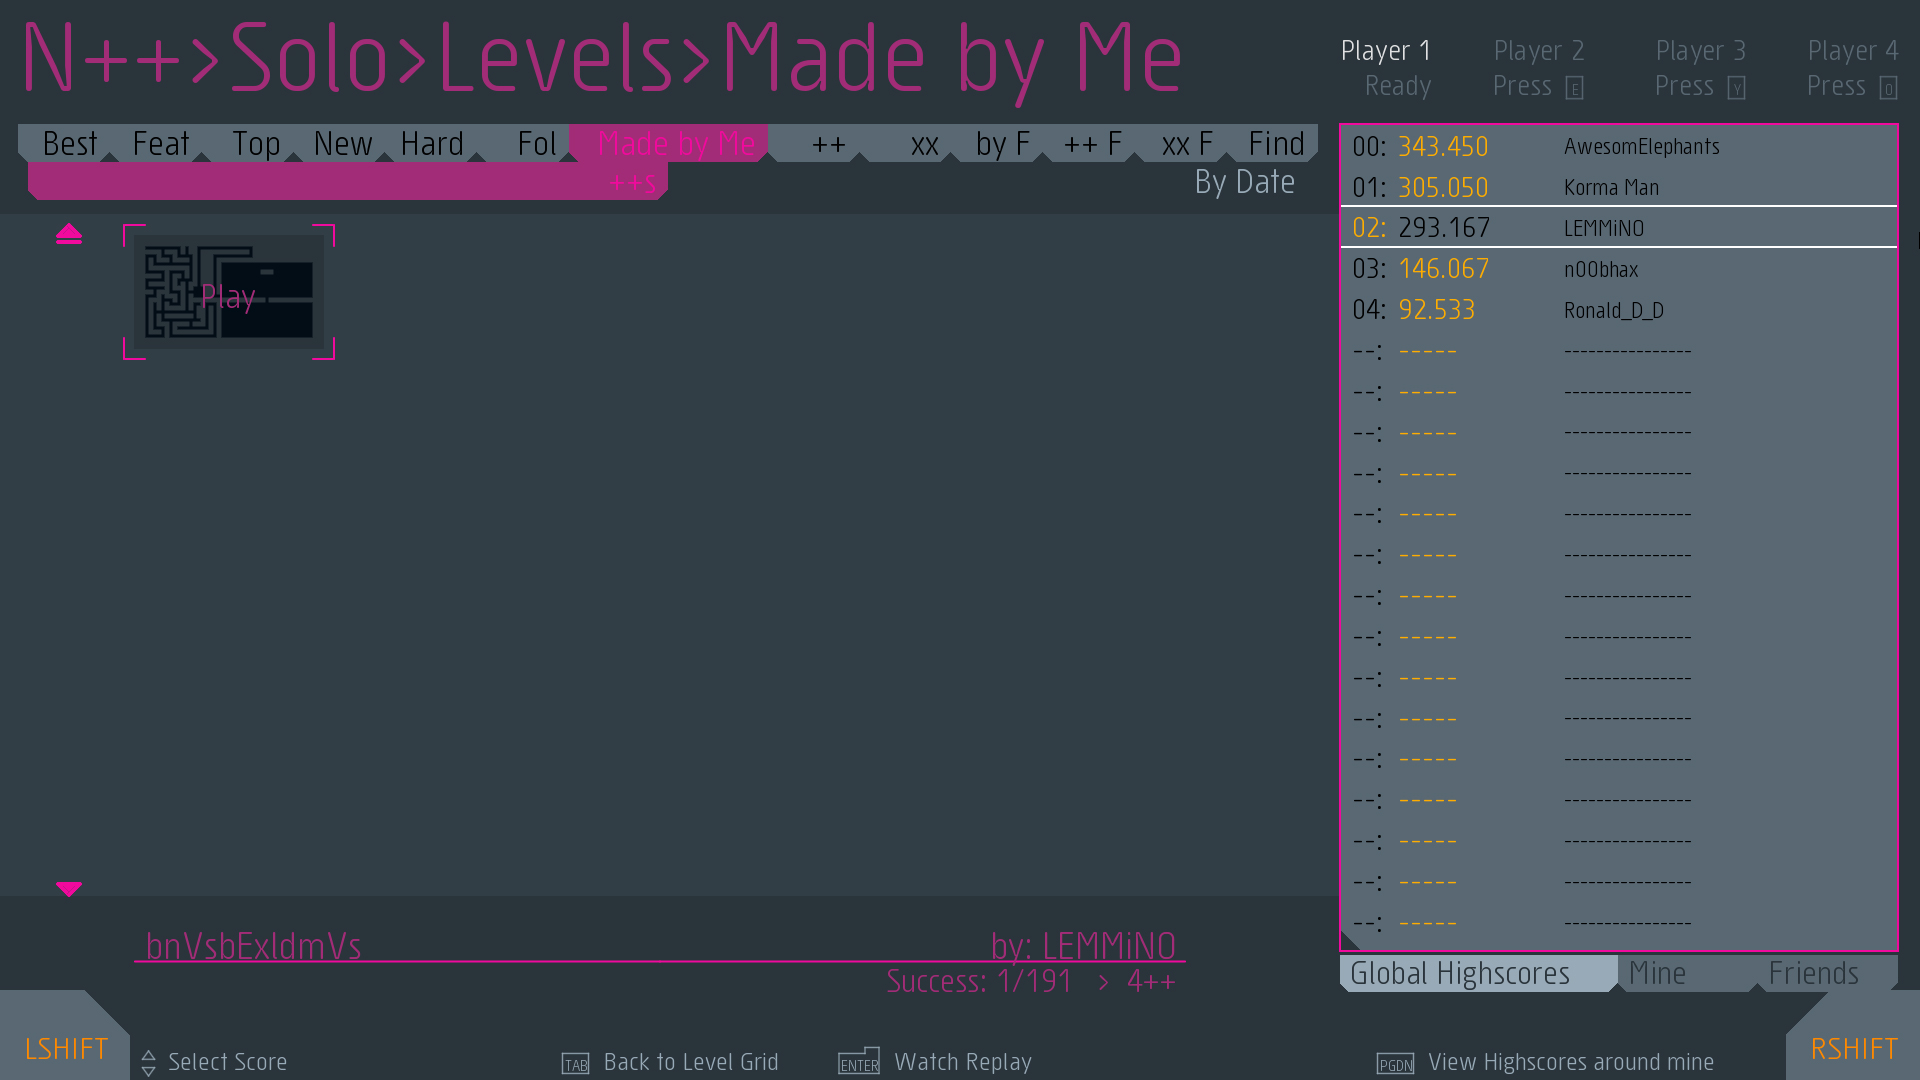 In hindsight, making N++ part of the puzzle was not the best idea as it costs money and only served to stifle participation. I mainly included it because I'm a big fan of the game.